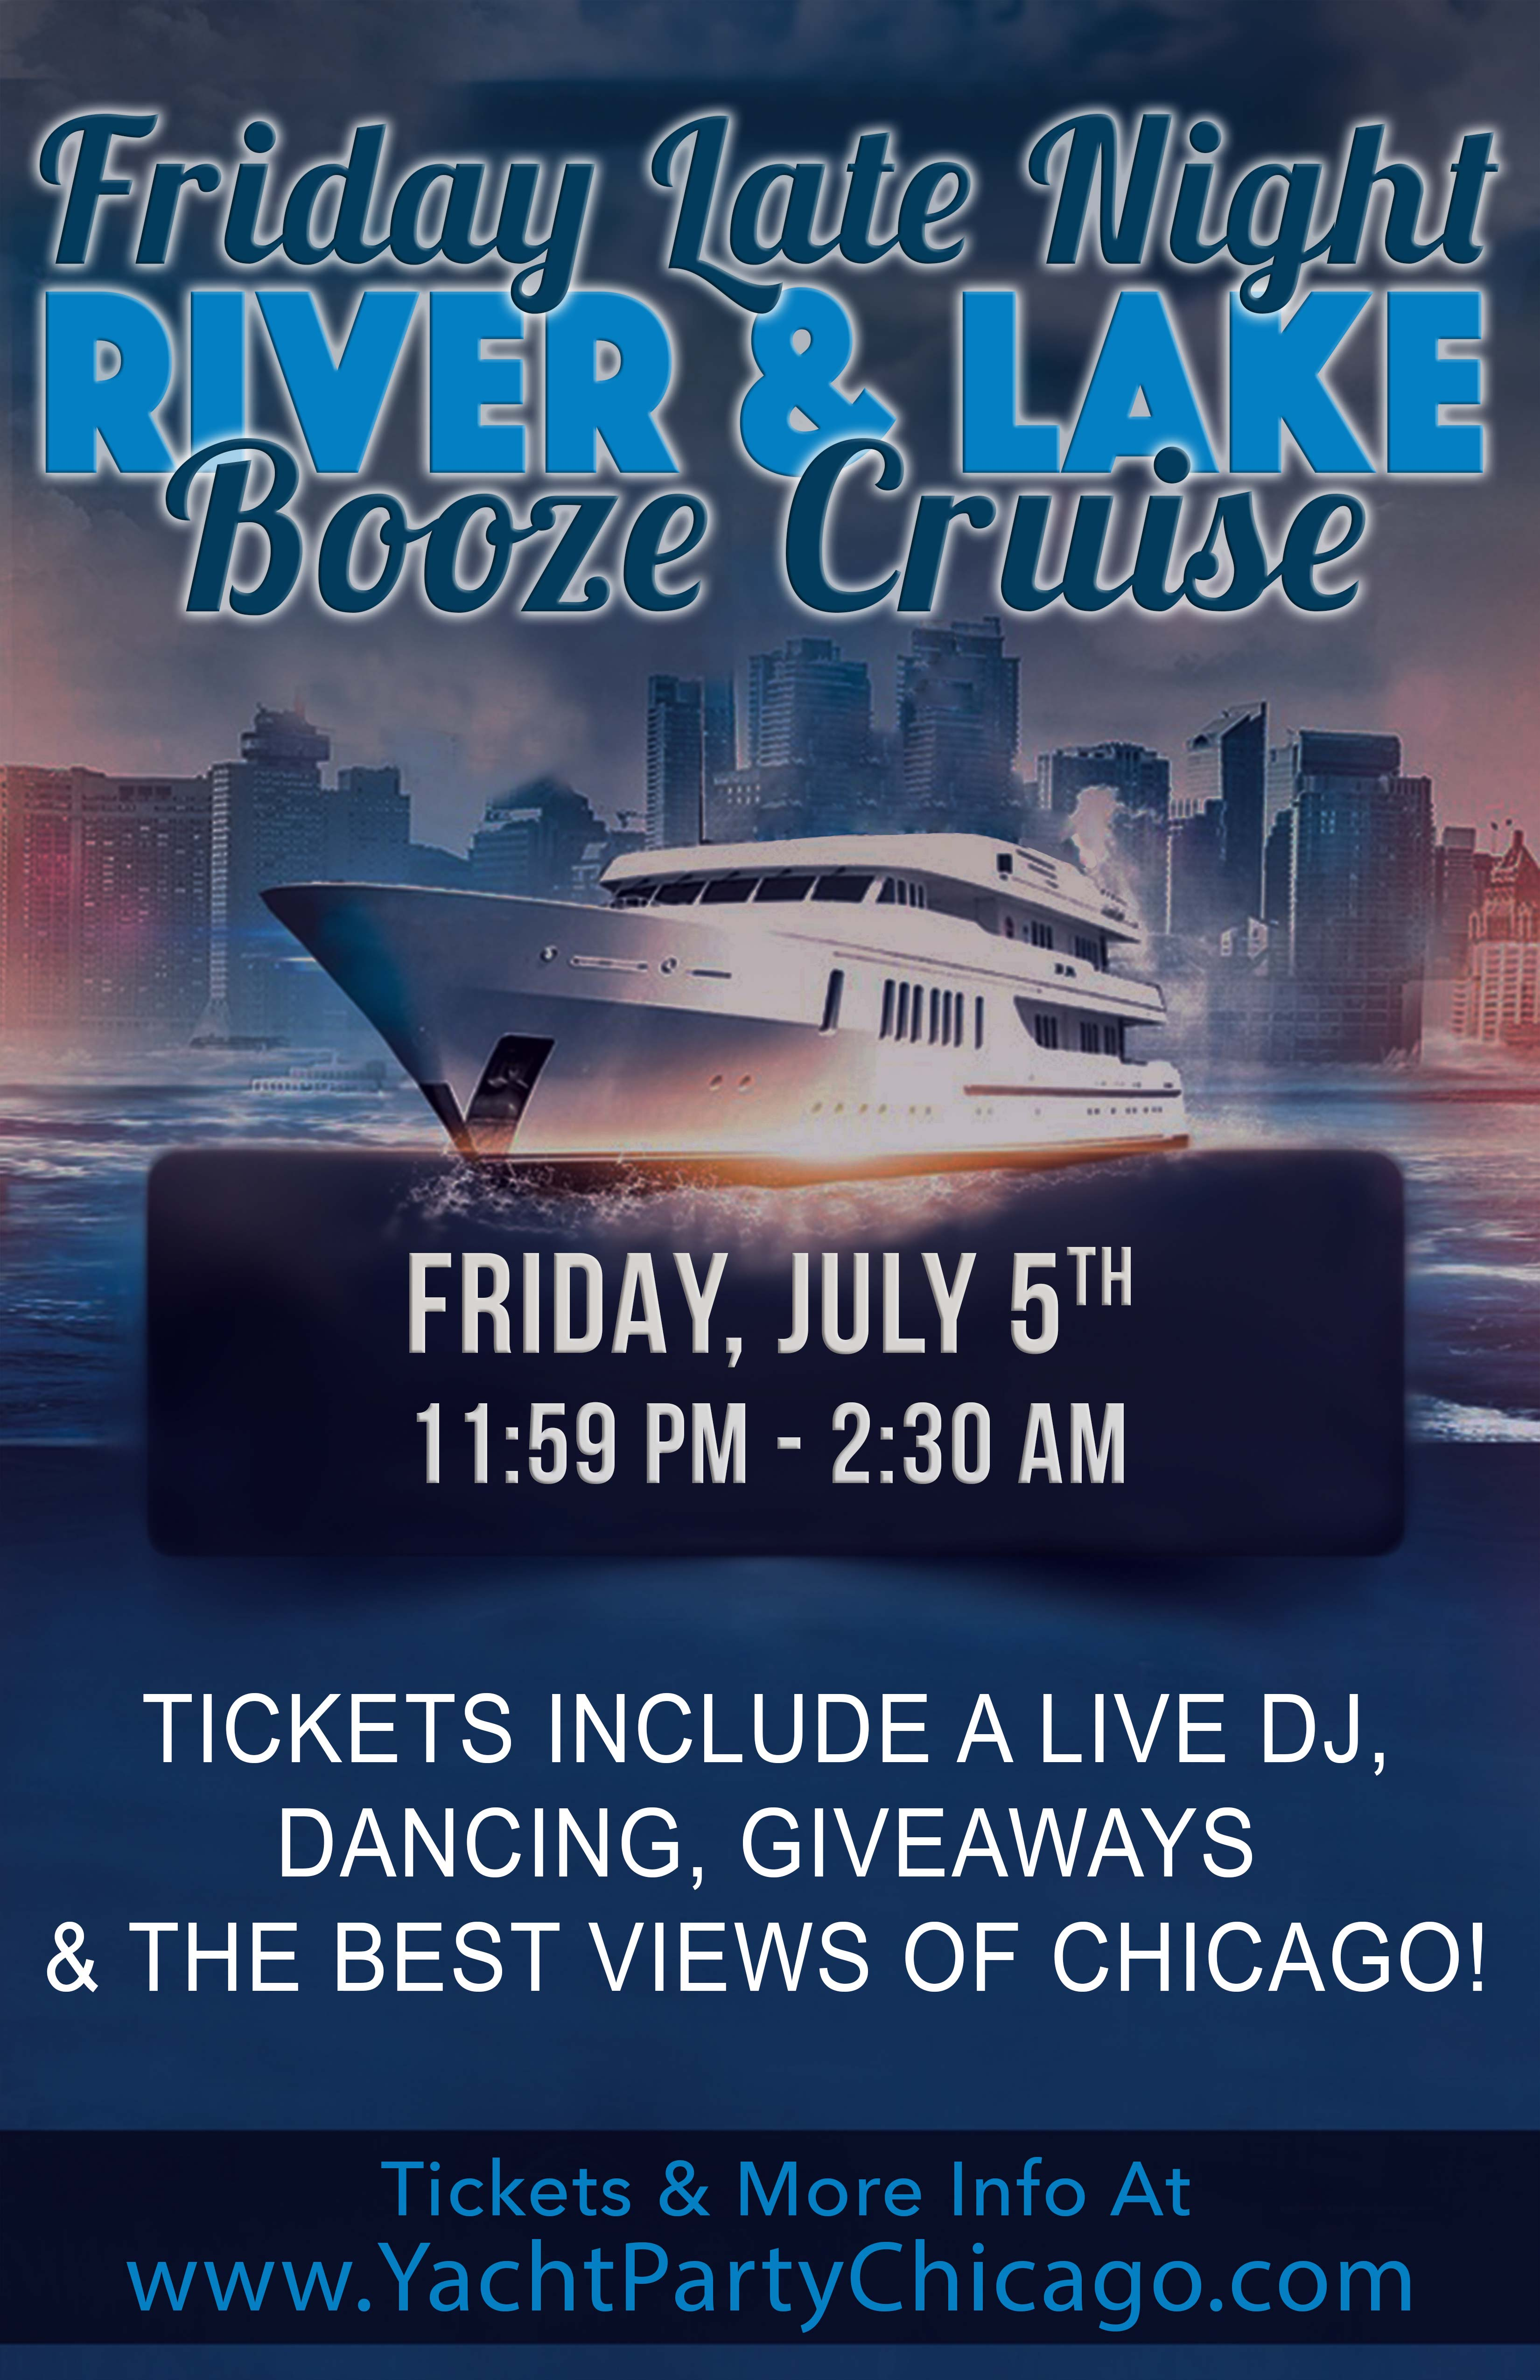 Friday Late Night Booze Cruise Party - Tickets include a Live DJ, Dancing, Giveaways and the Best Views of Chicago!